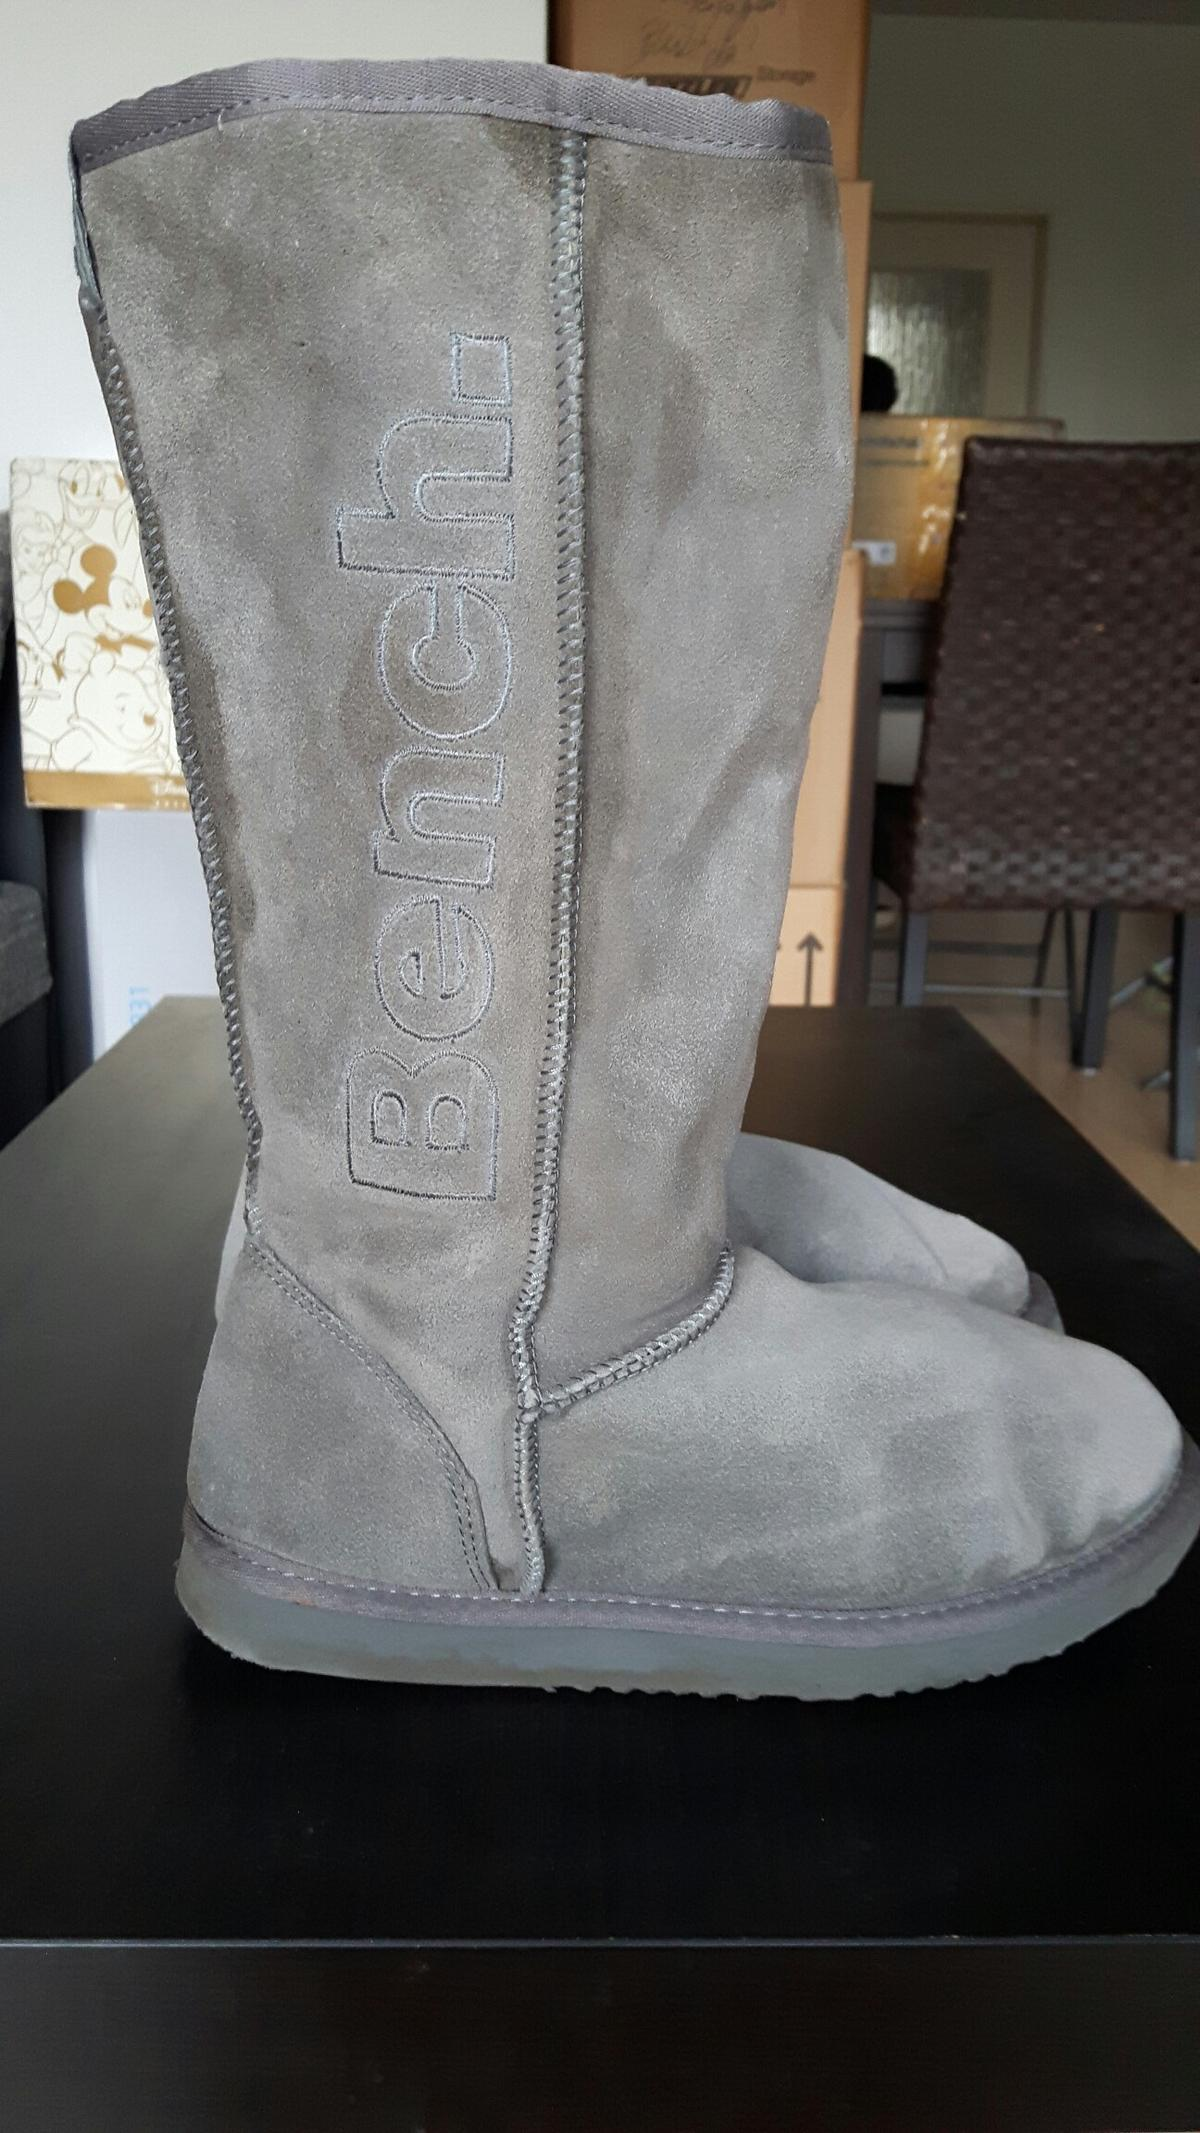 Bench Leder Winter Boots Stiefel grau in 42781 Haan für 20